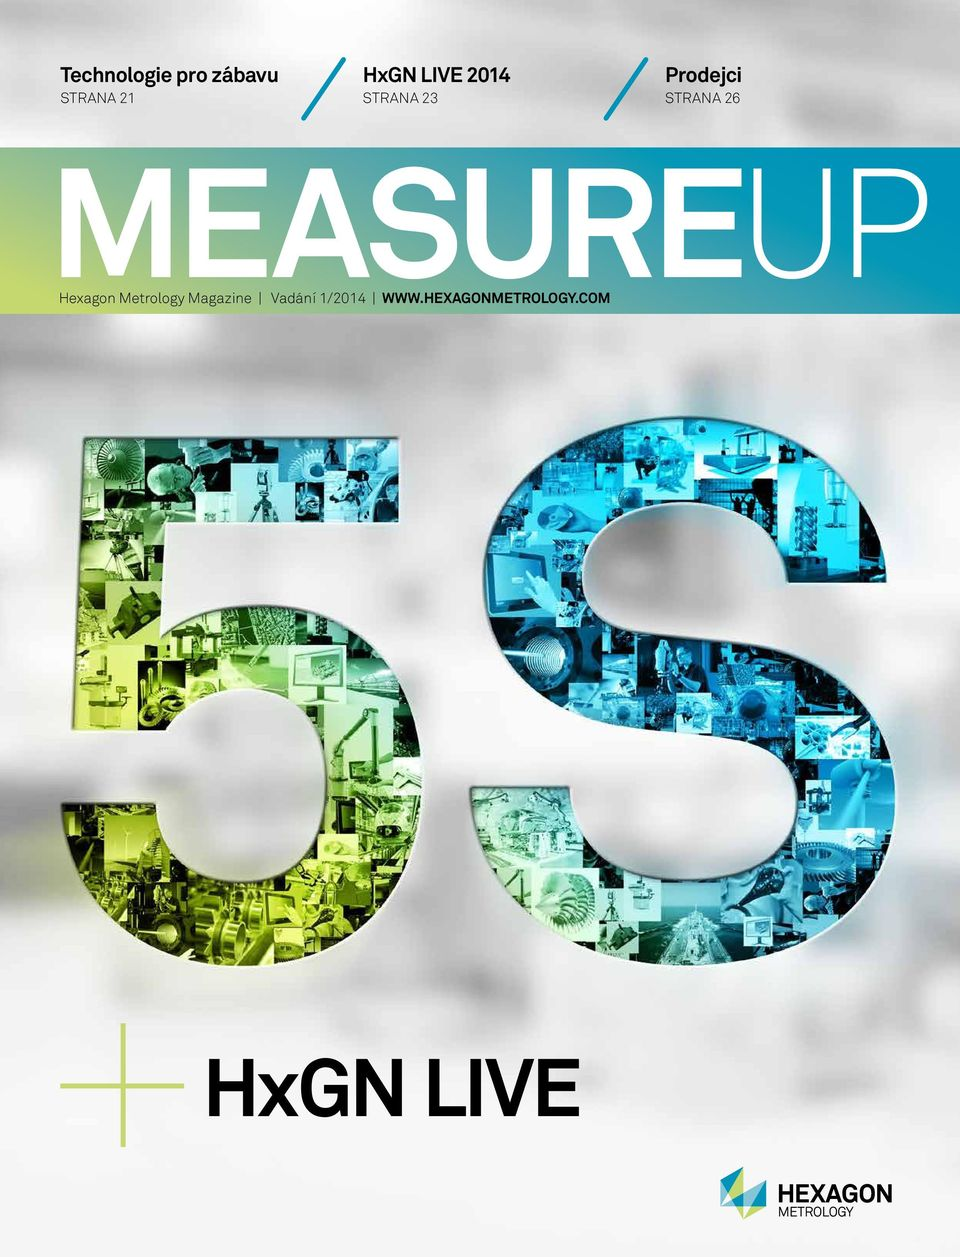 MEASUREUP Hexagon Metrology Magazine